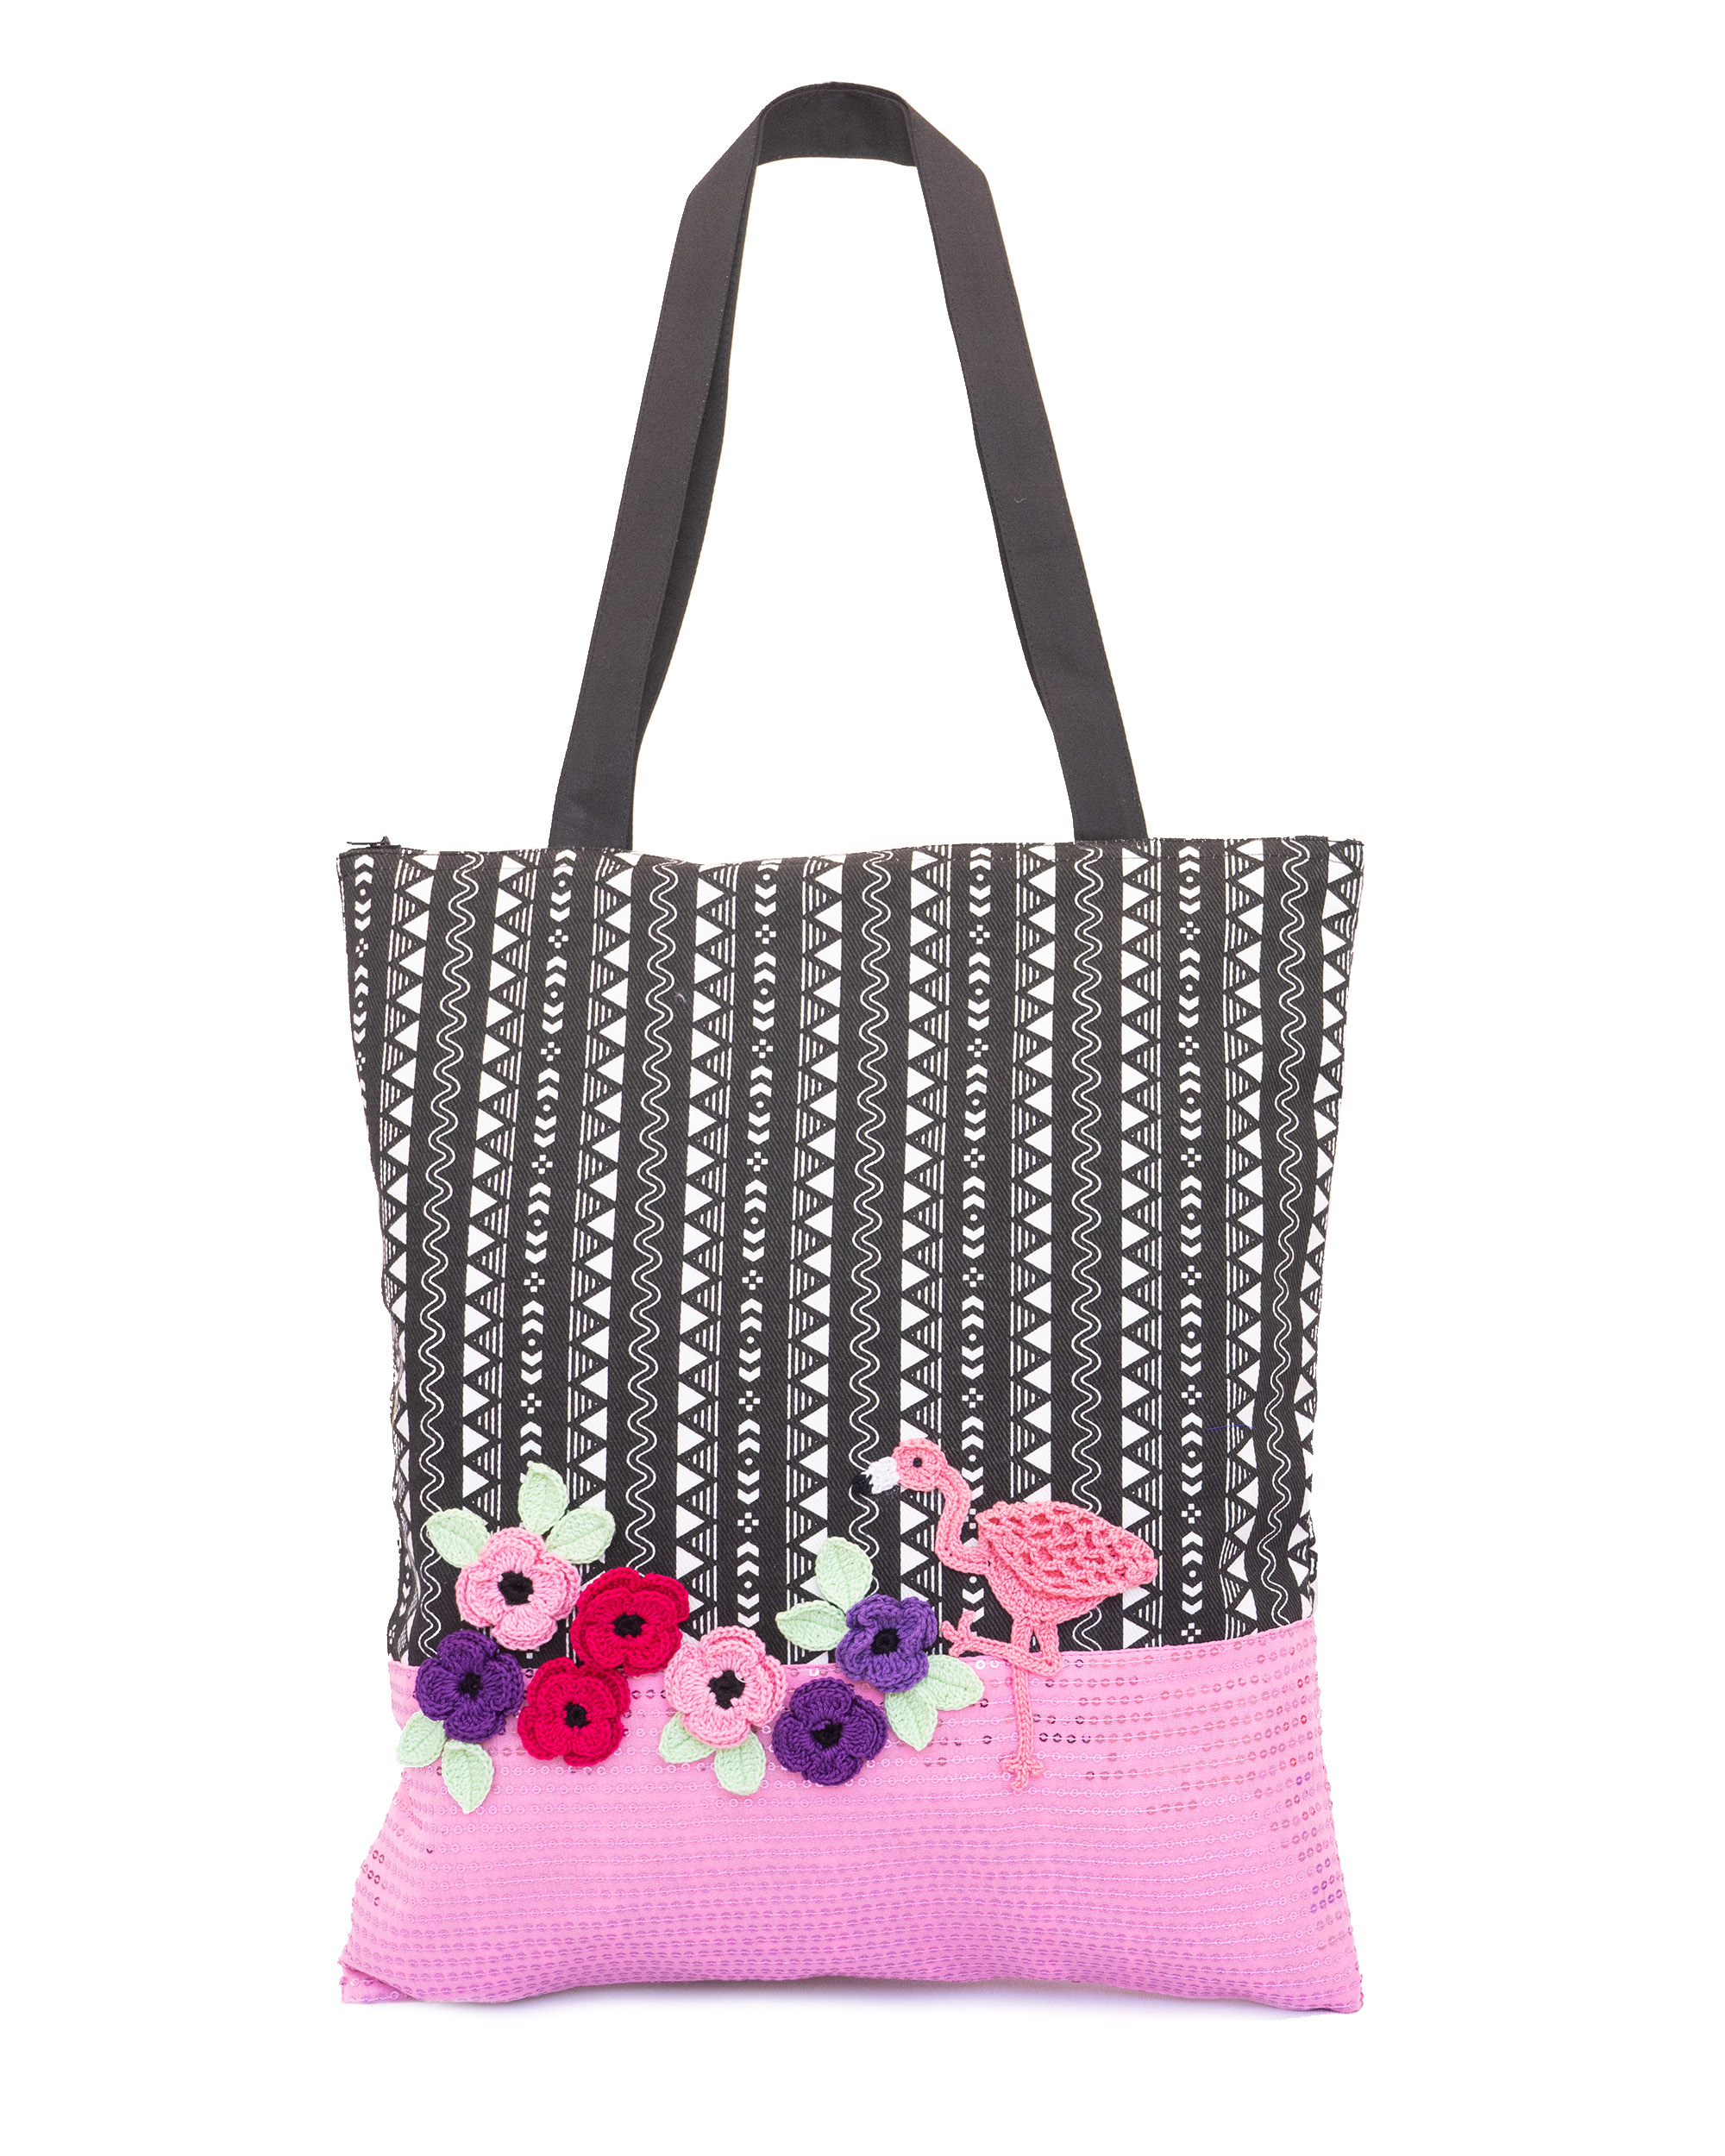 Happy Threads Women's Blingy Tote Bag(Light Pink)